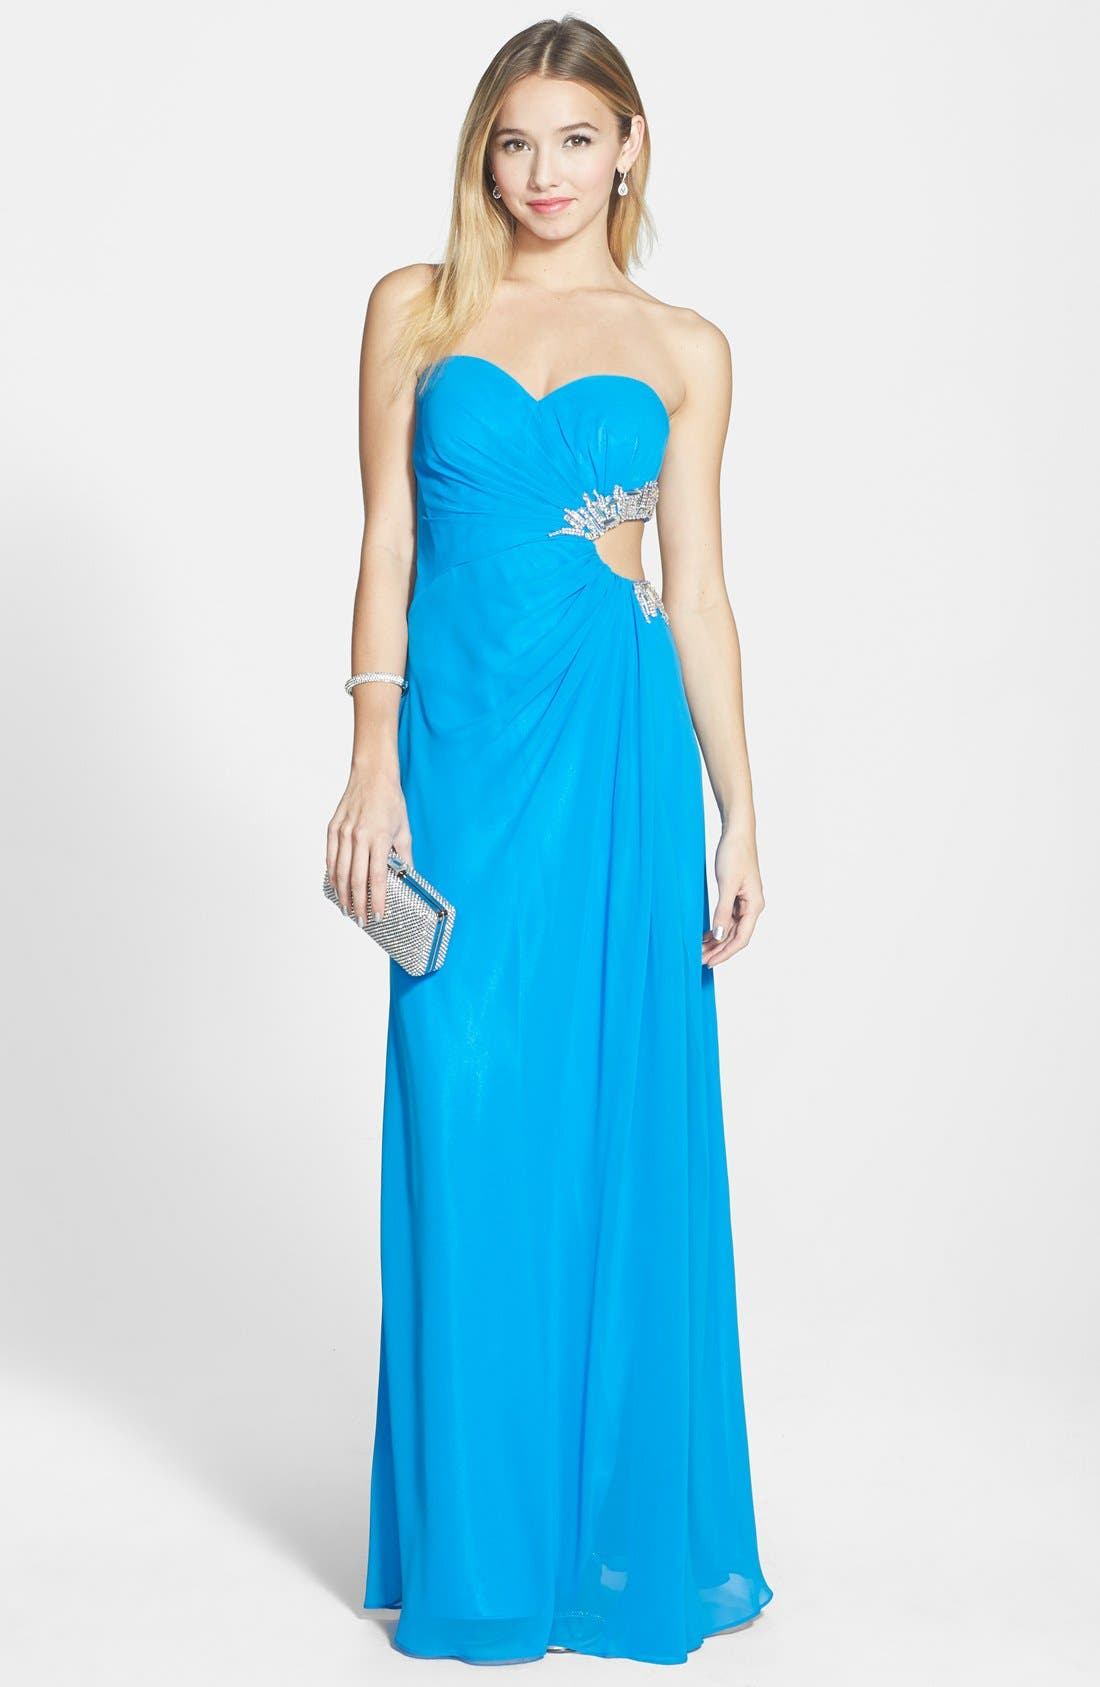 Alternate Image 1 Selected - Faviana Embellished Cutout Sweetheart Chiffon Gown (Online Only)